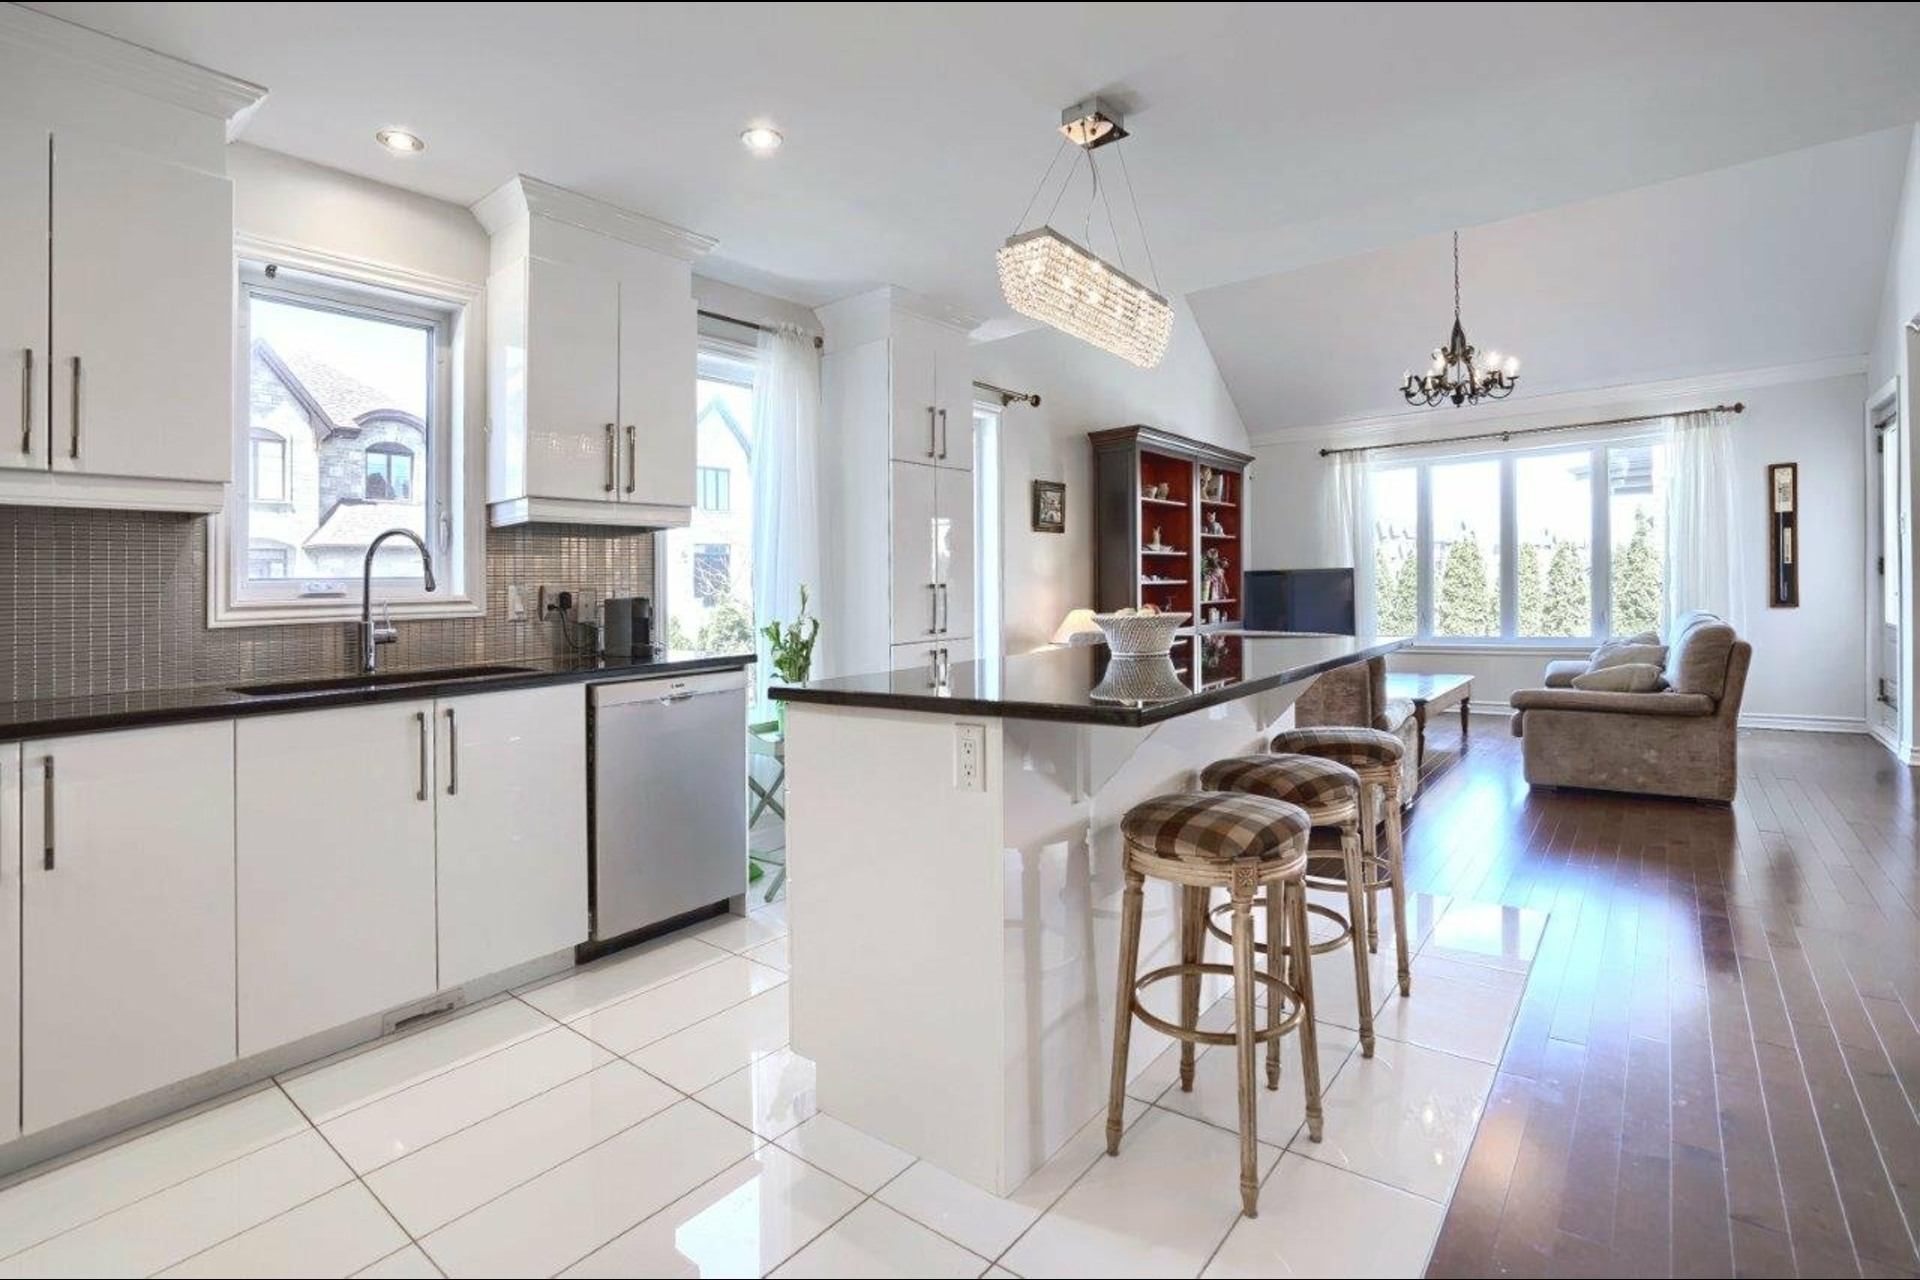 image 4 - House For sale Brossard - 17 rooms